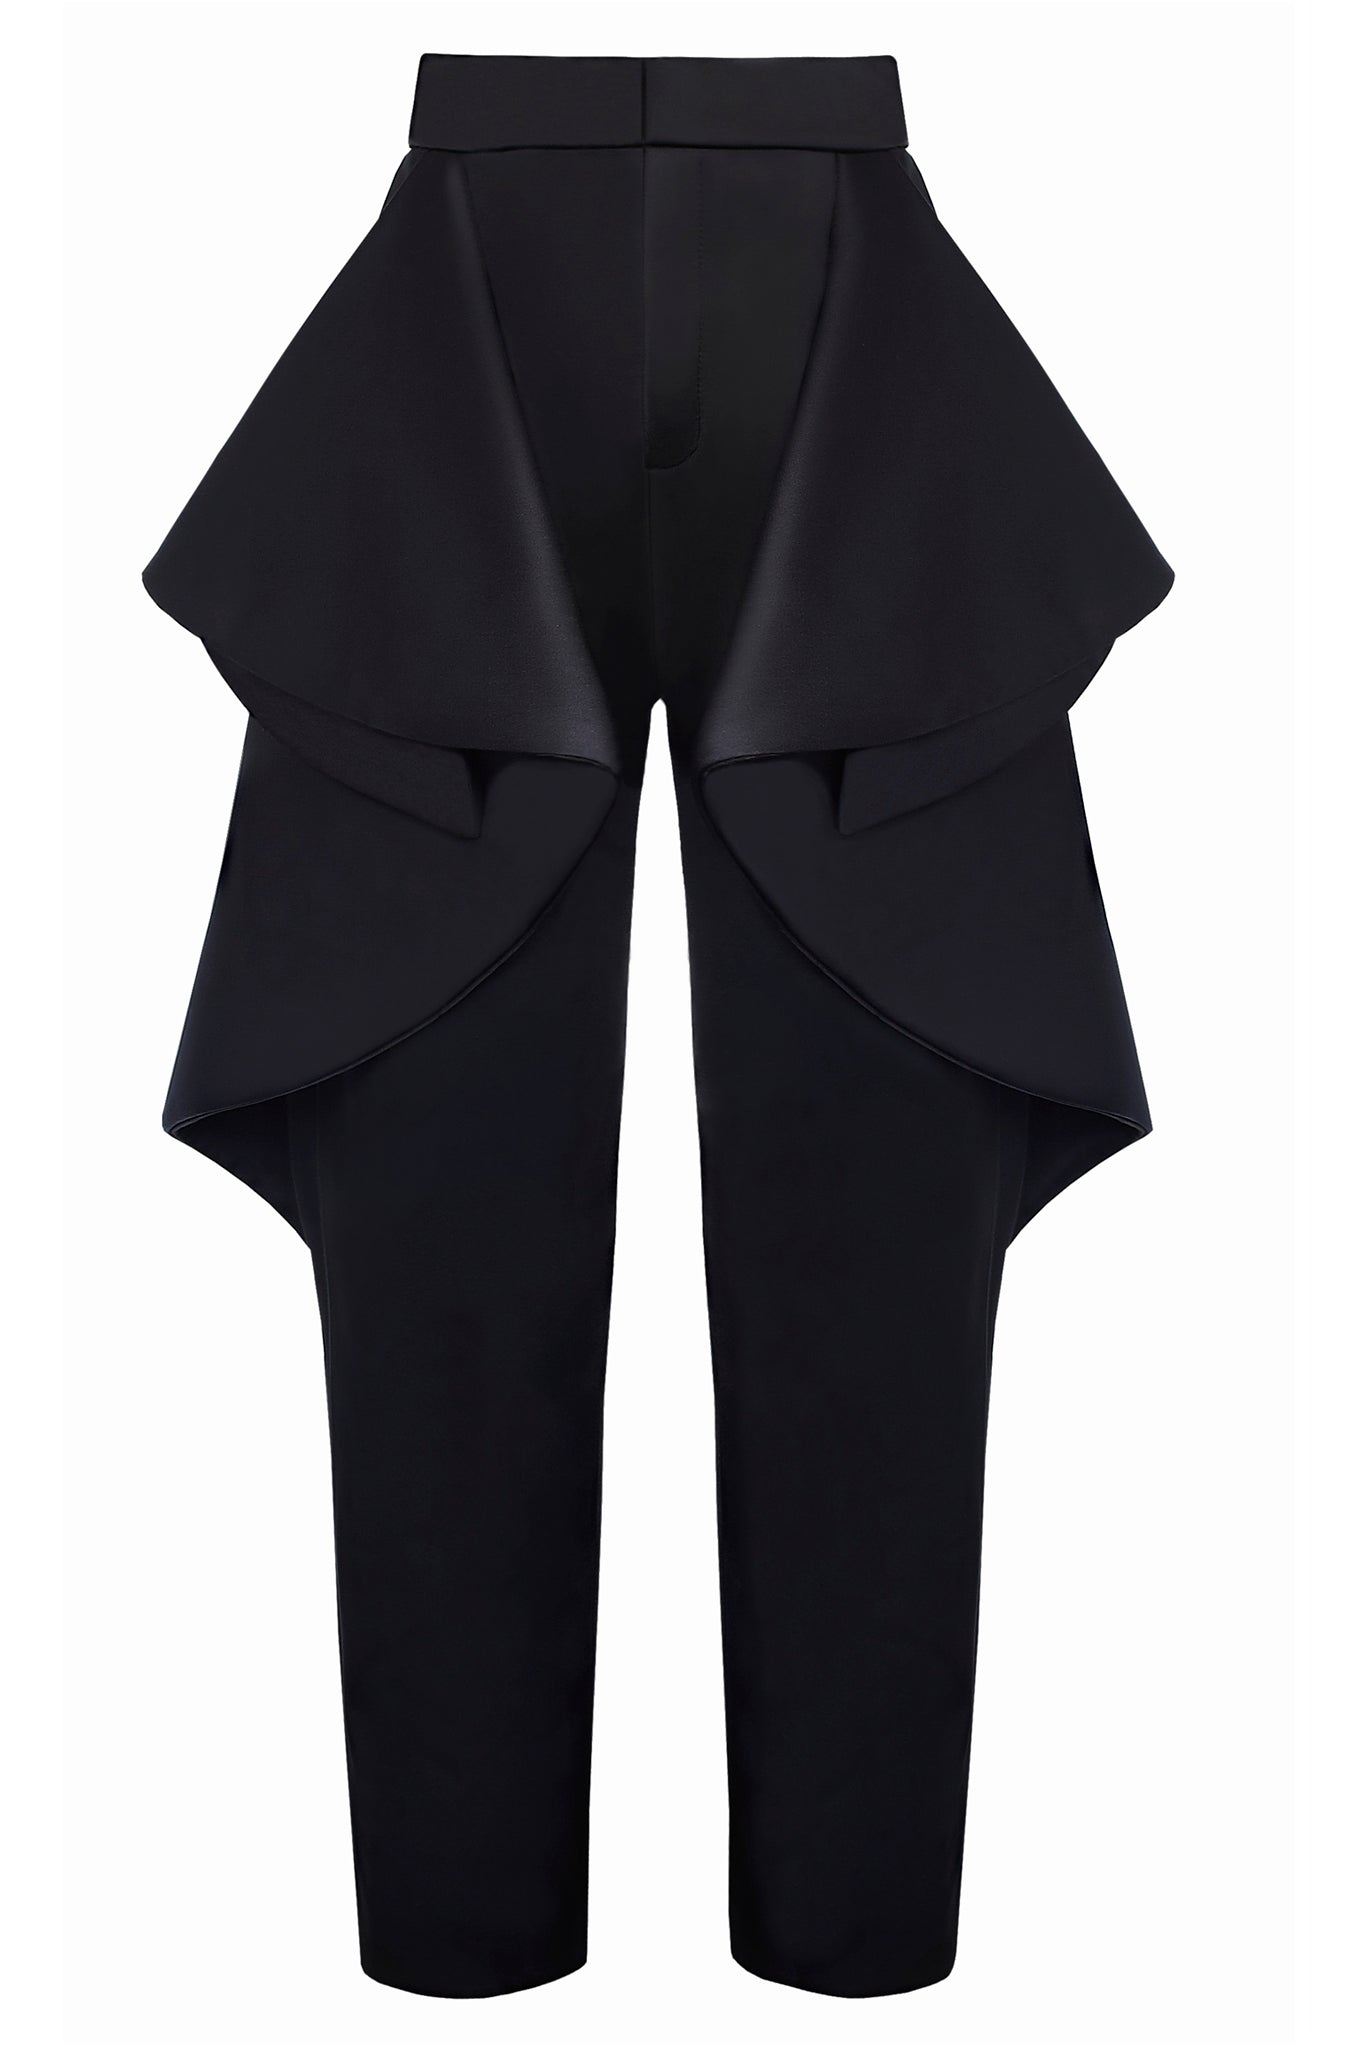 "The Cimone AW17 ""Smoulder"" pant is a artful mix between a trouser and a skirt, with an elegant two-tone side drape. These trousers are a dramatic statement!"